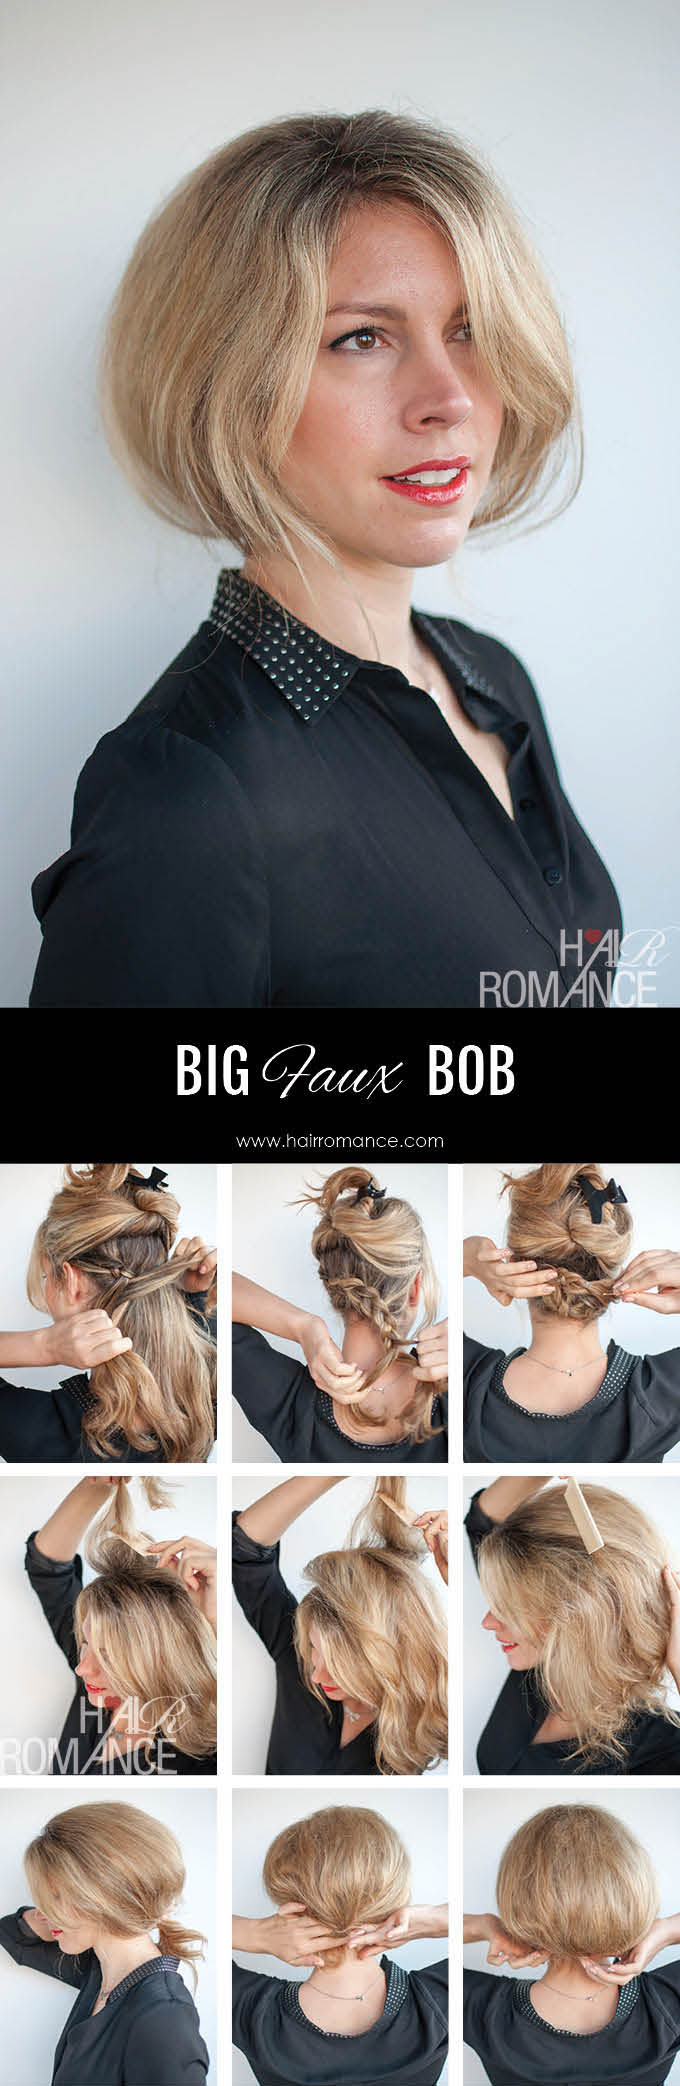 Hair Romance - Big faux bob hairstyle tutorial